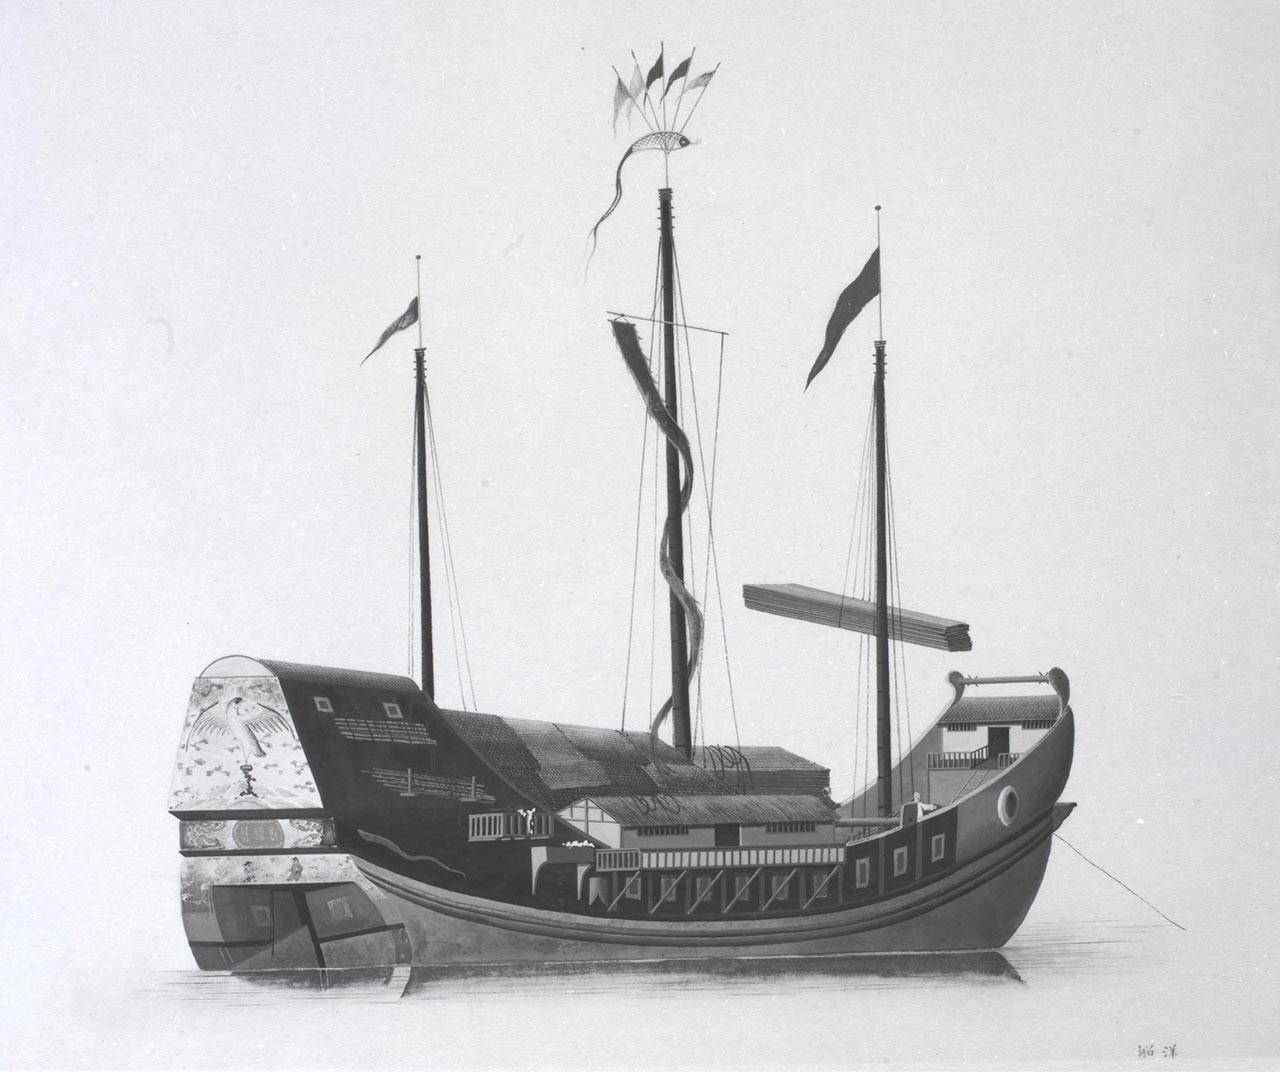 A sea-going ship, typically made of ironwood, with three masts